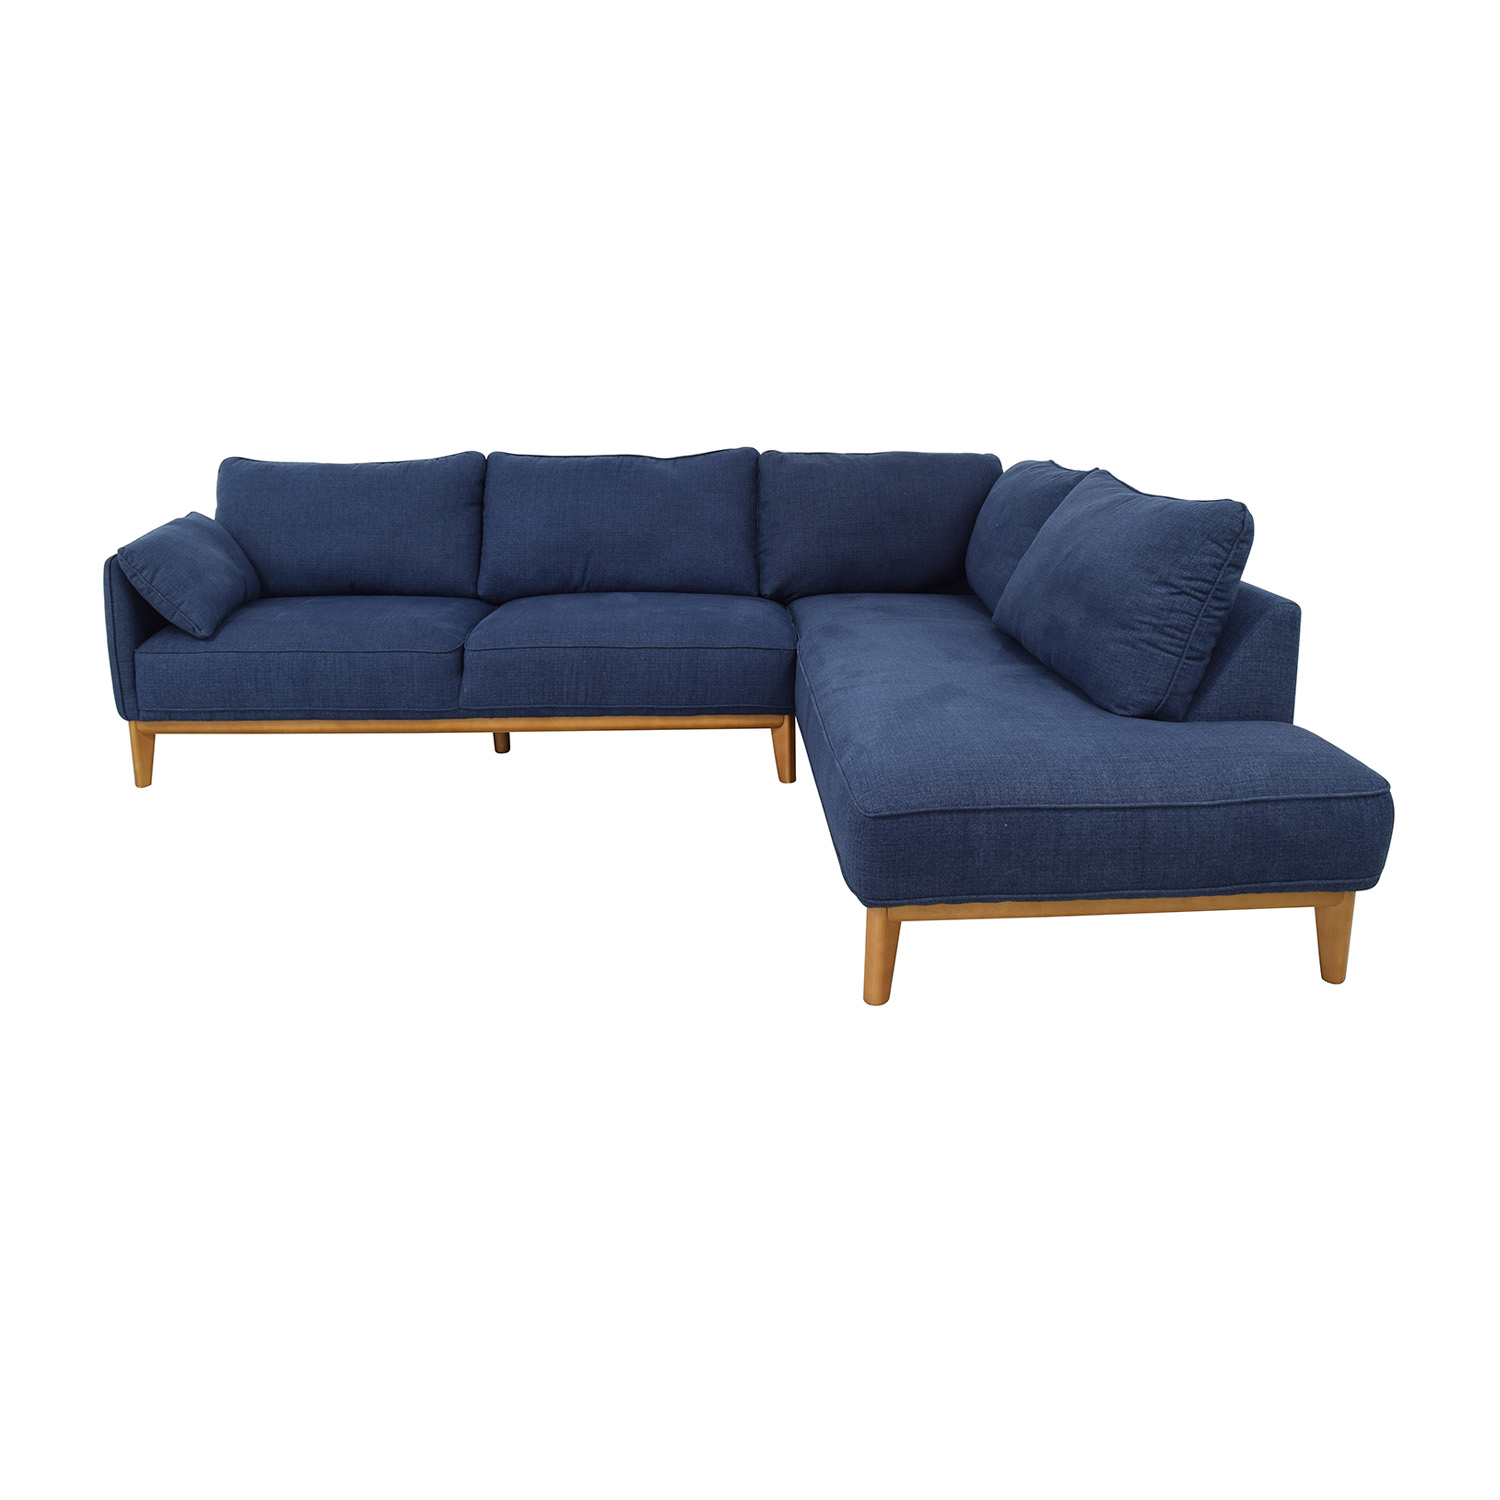 shop Macy's Sectional Sofa Macy's Sectionals